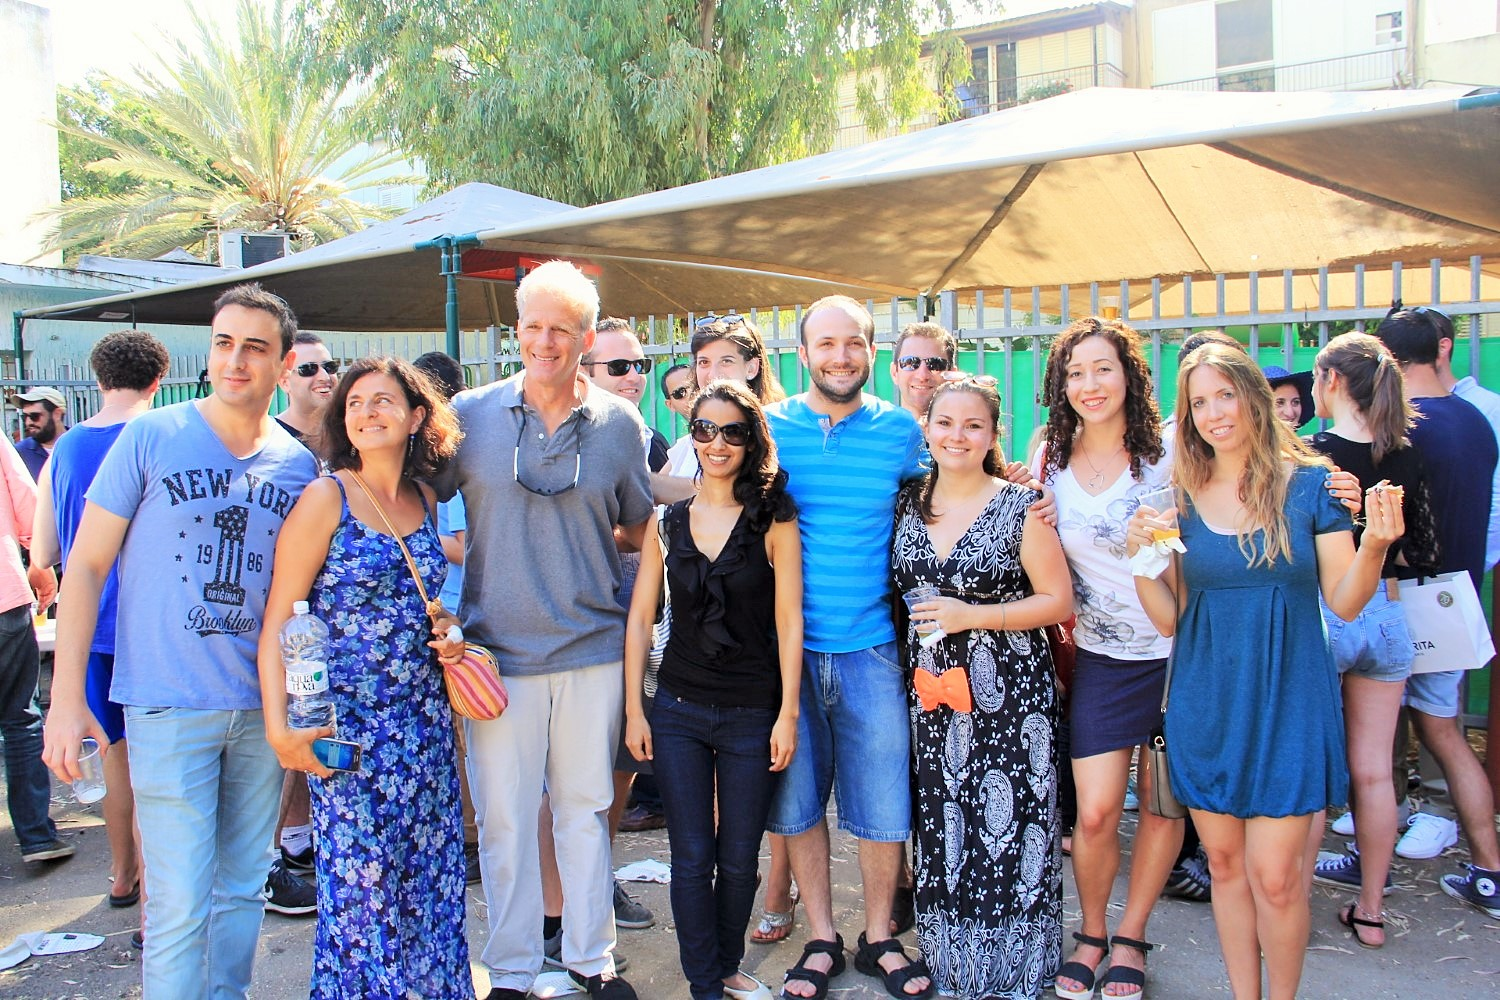 Click photo to download. Caption: Member of Knesset Michael Oren (in front, third from left) with other attendees of JNFuture Israel's barbecue for Israel's 68th Independence Day. Credit: Courtesy Jewish National Fund.